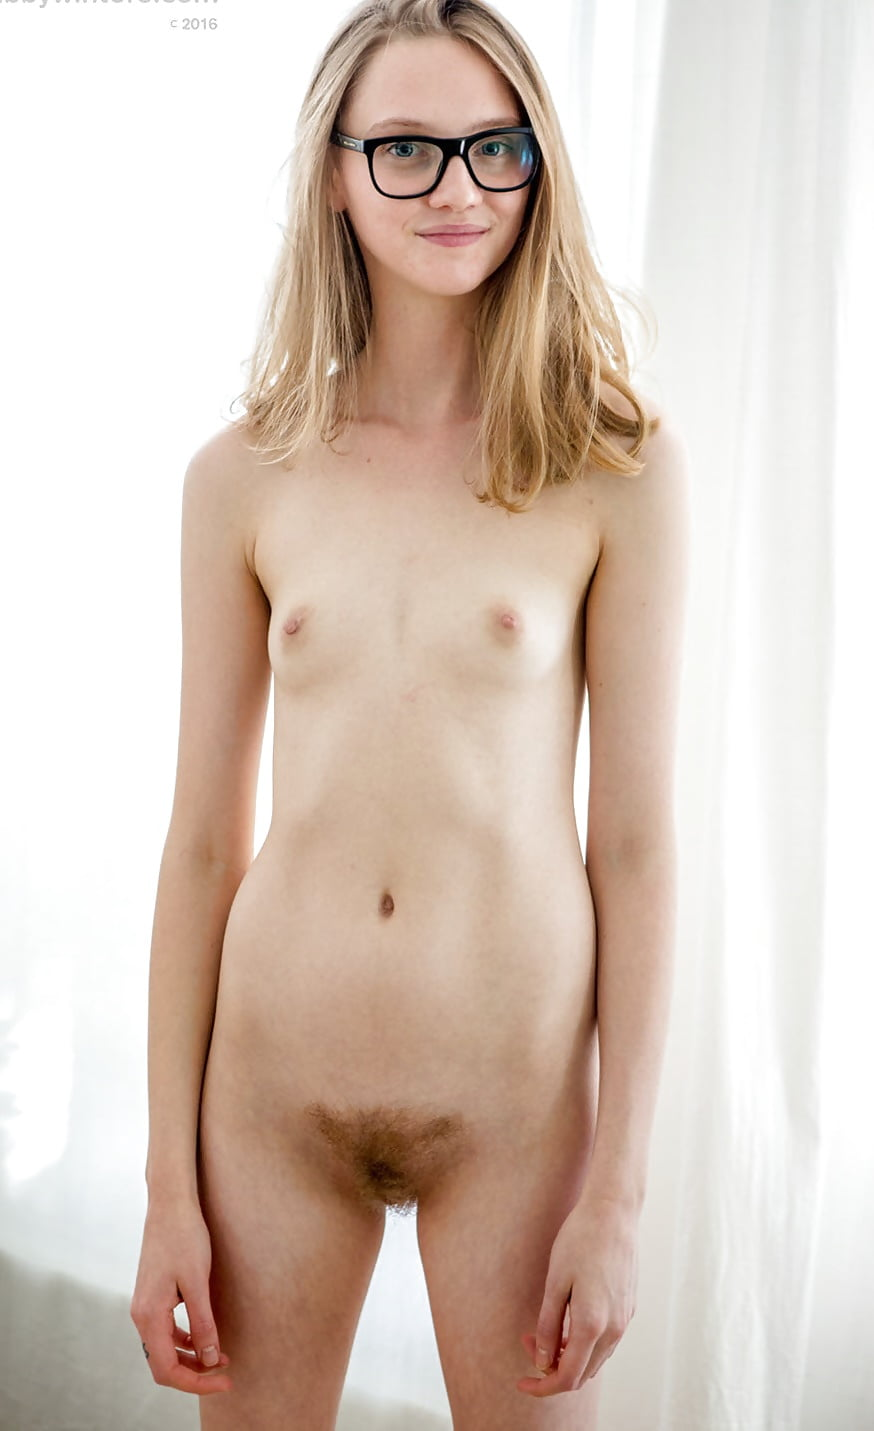 Thin nude models with glasses #1